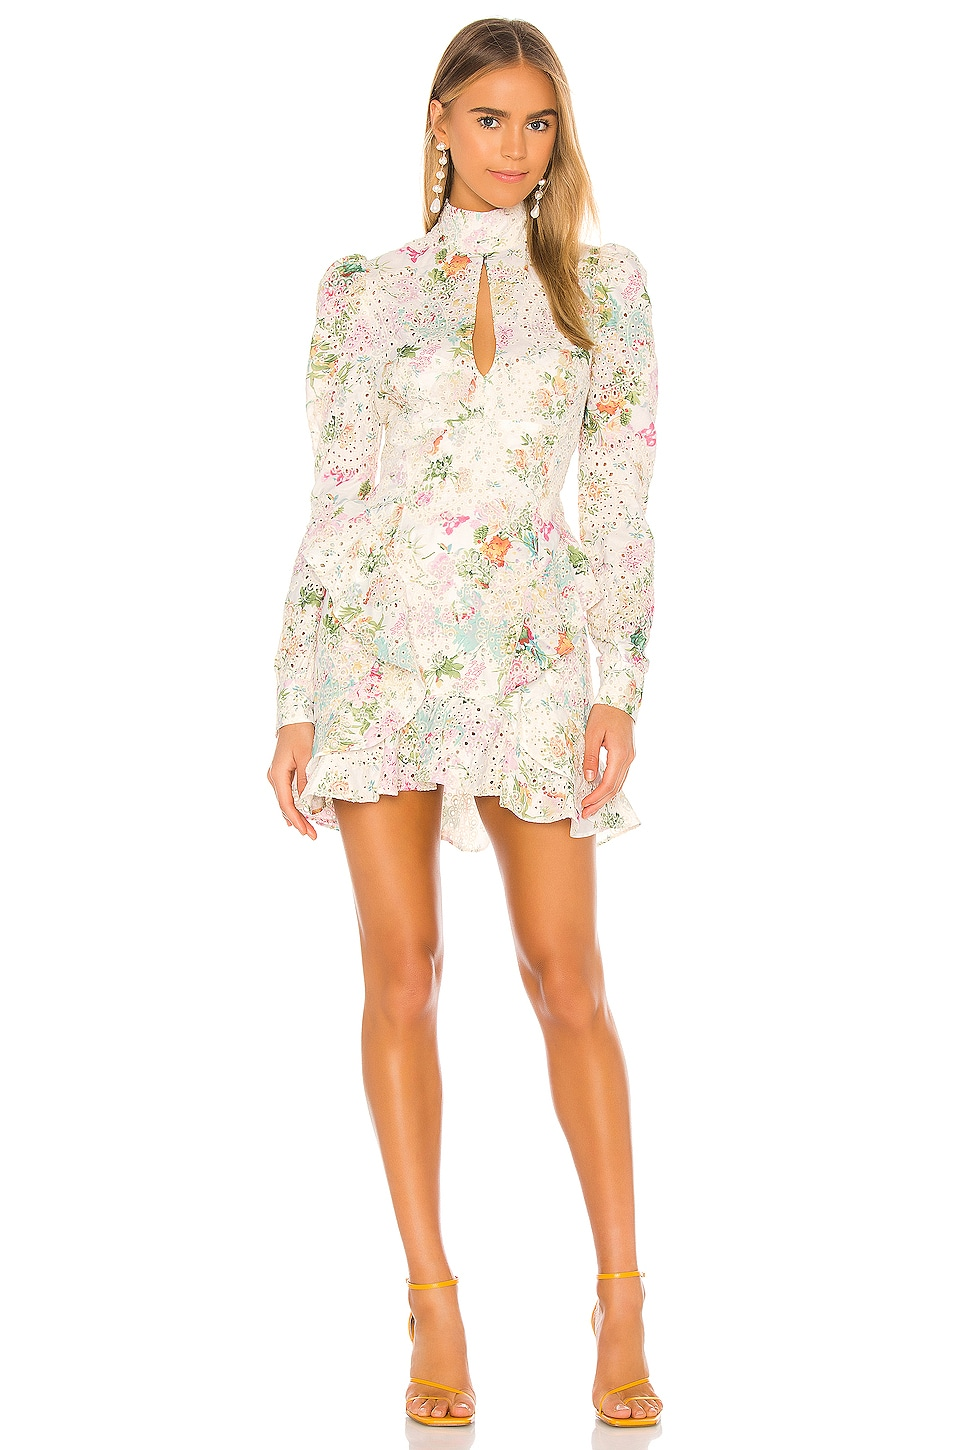 Nookie Darling Long Sleeve Mini Dress In Floral Revolve Online shopping south africa buy clothes & shoes.fashionhub. nookie